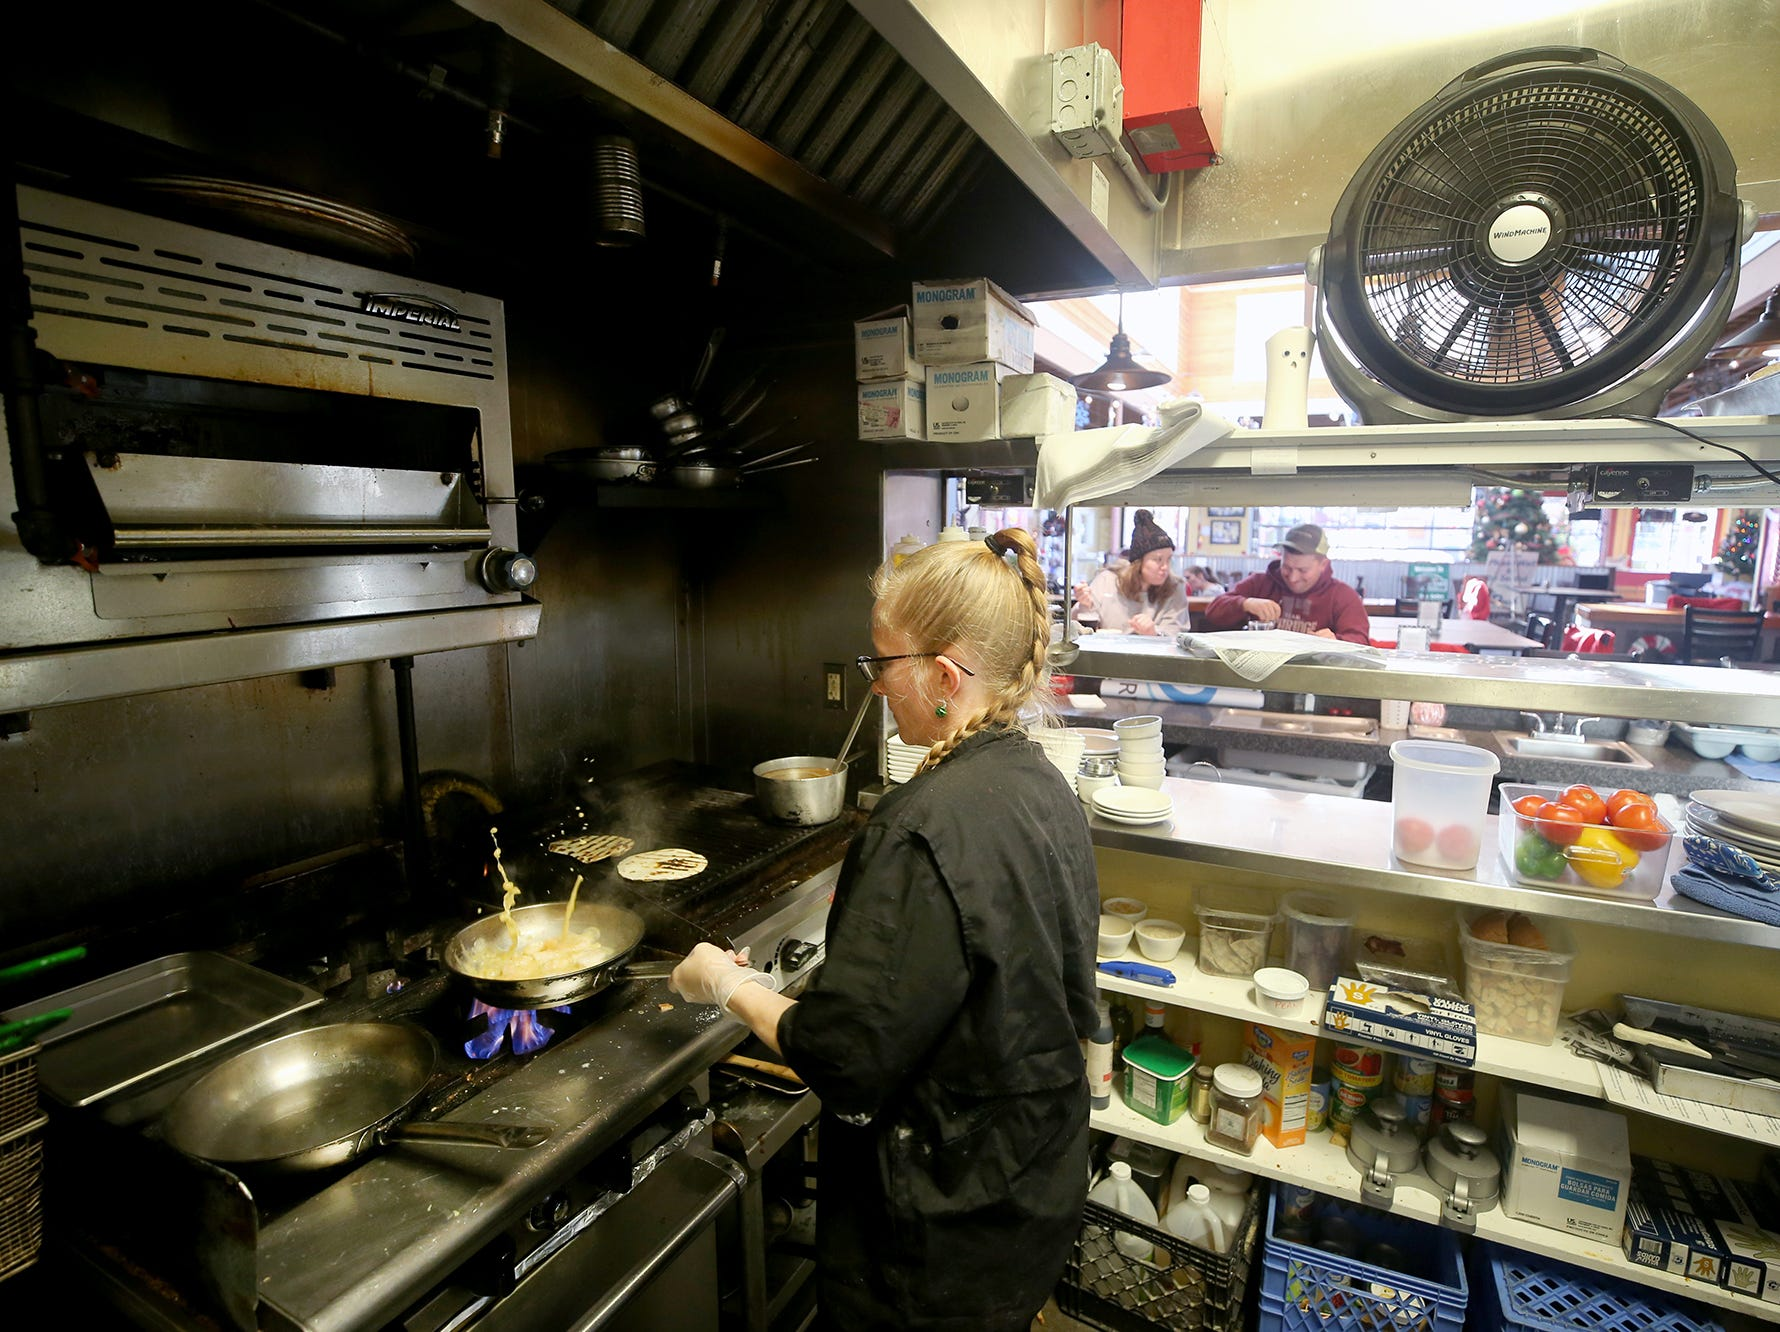 Cook Heather Farrell makes shrimp tacos at The Dock Bar & Eatery in the Port Orchard Market.